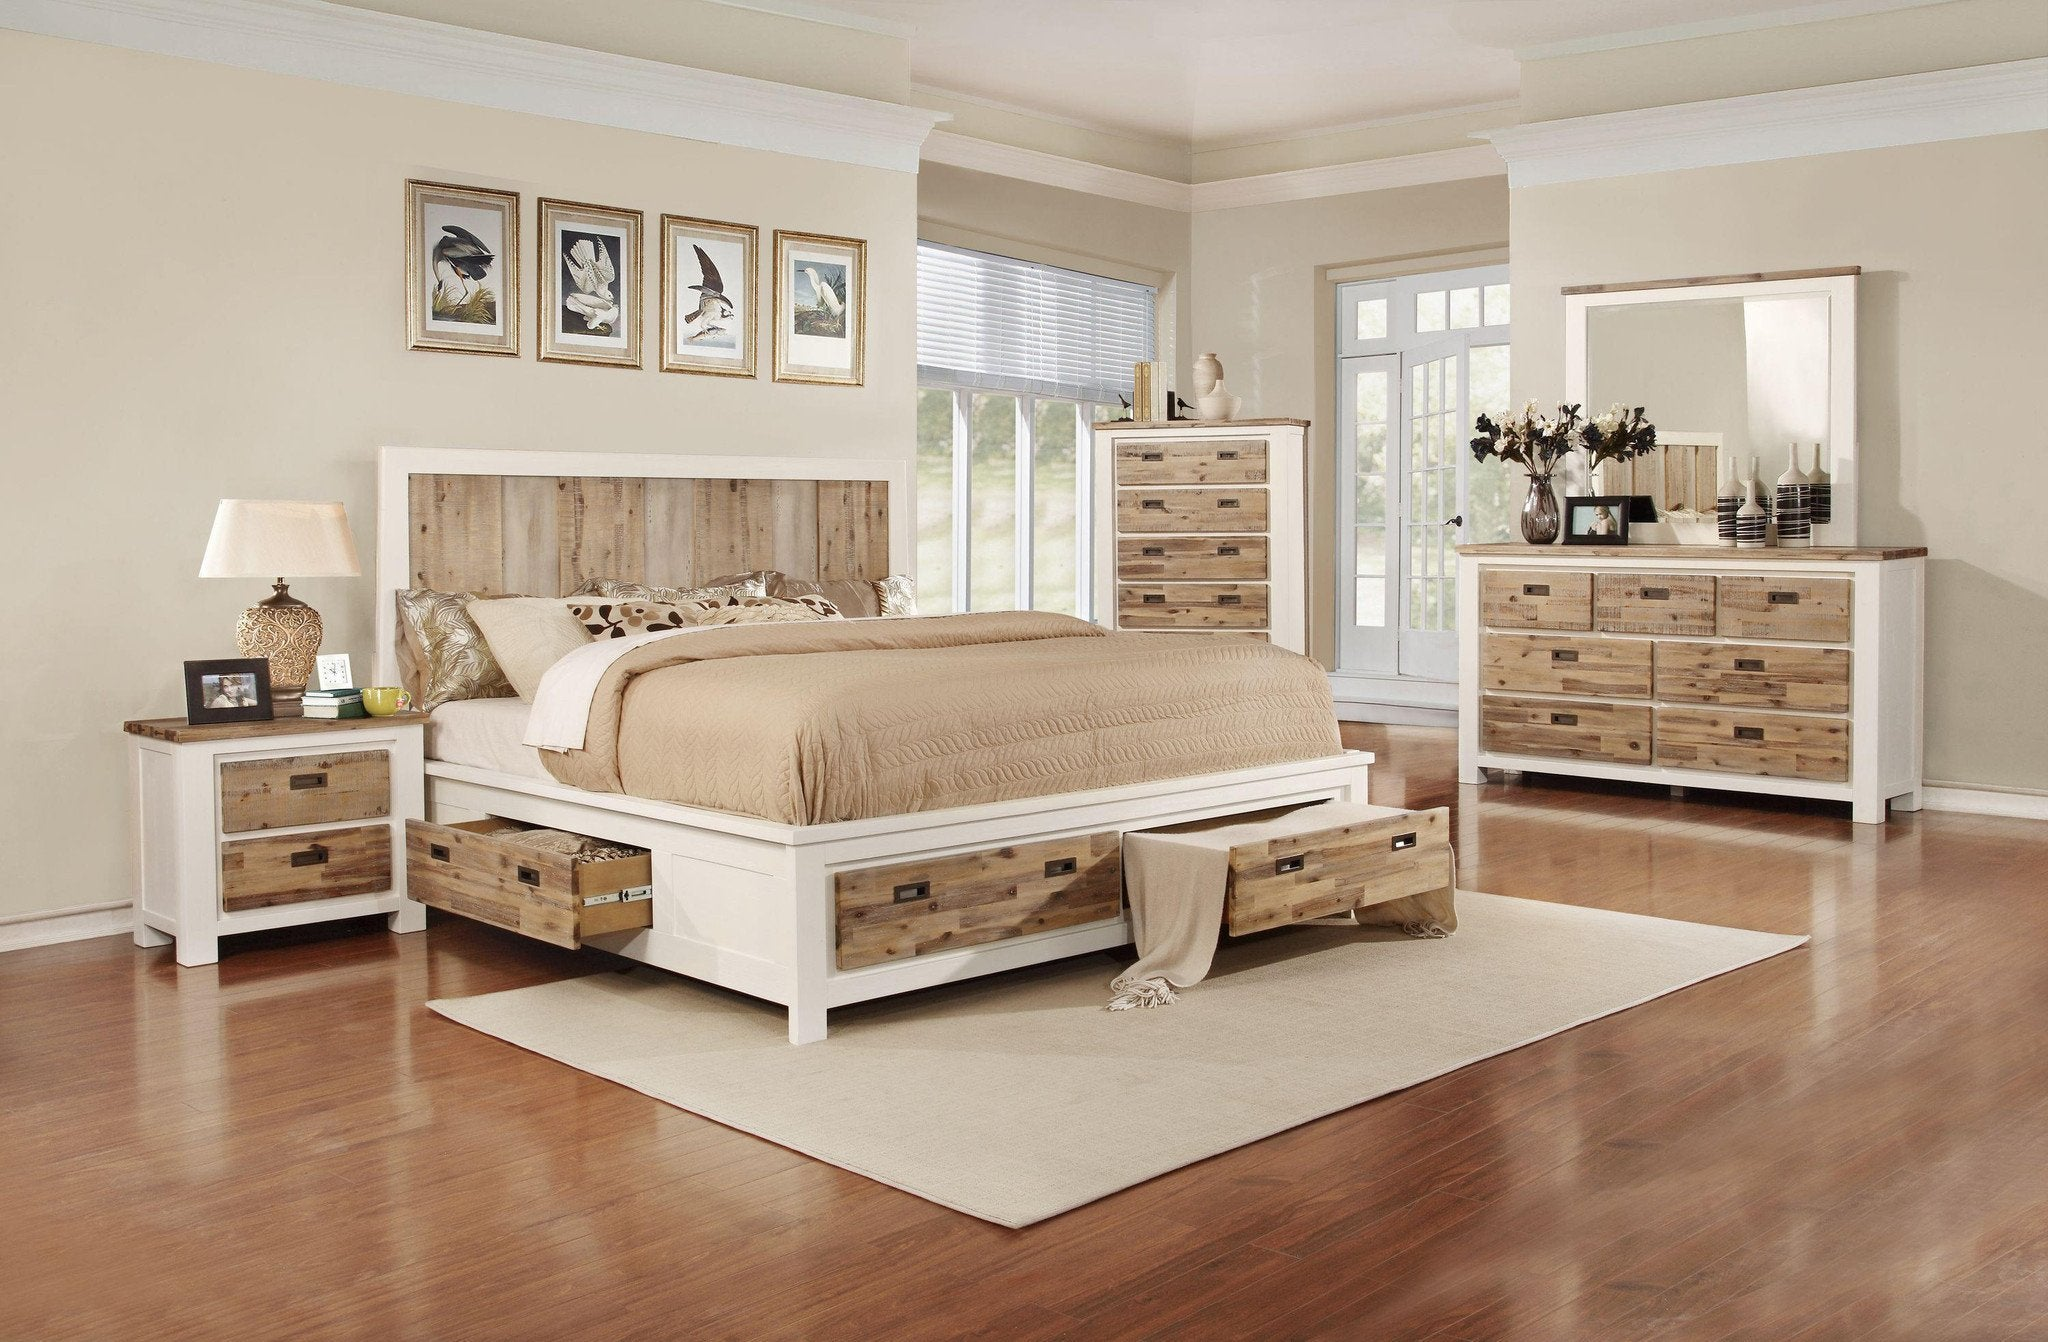 Country Rustic Collection Bedroom by Lifestyle. Country Rustic Collection Bedroom by Lifestyle   4 The Home Store